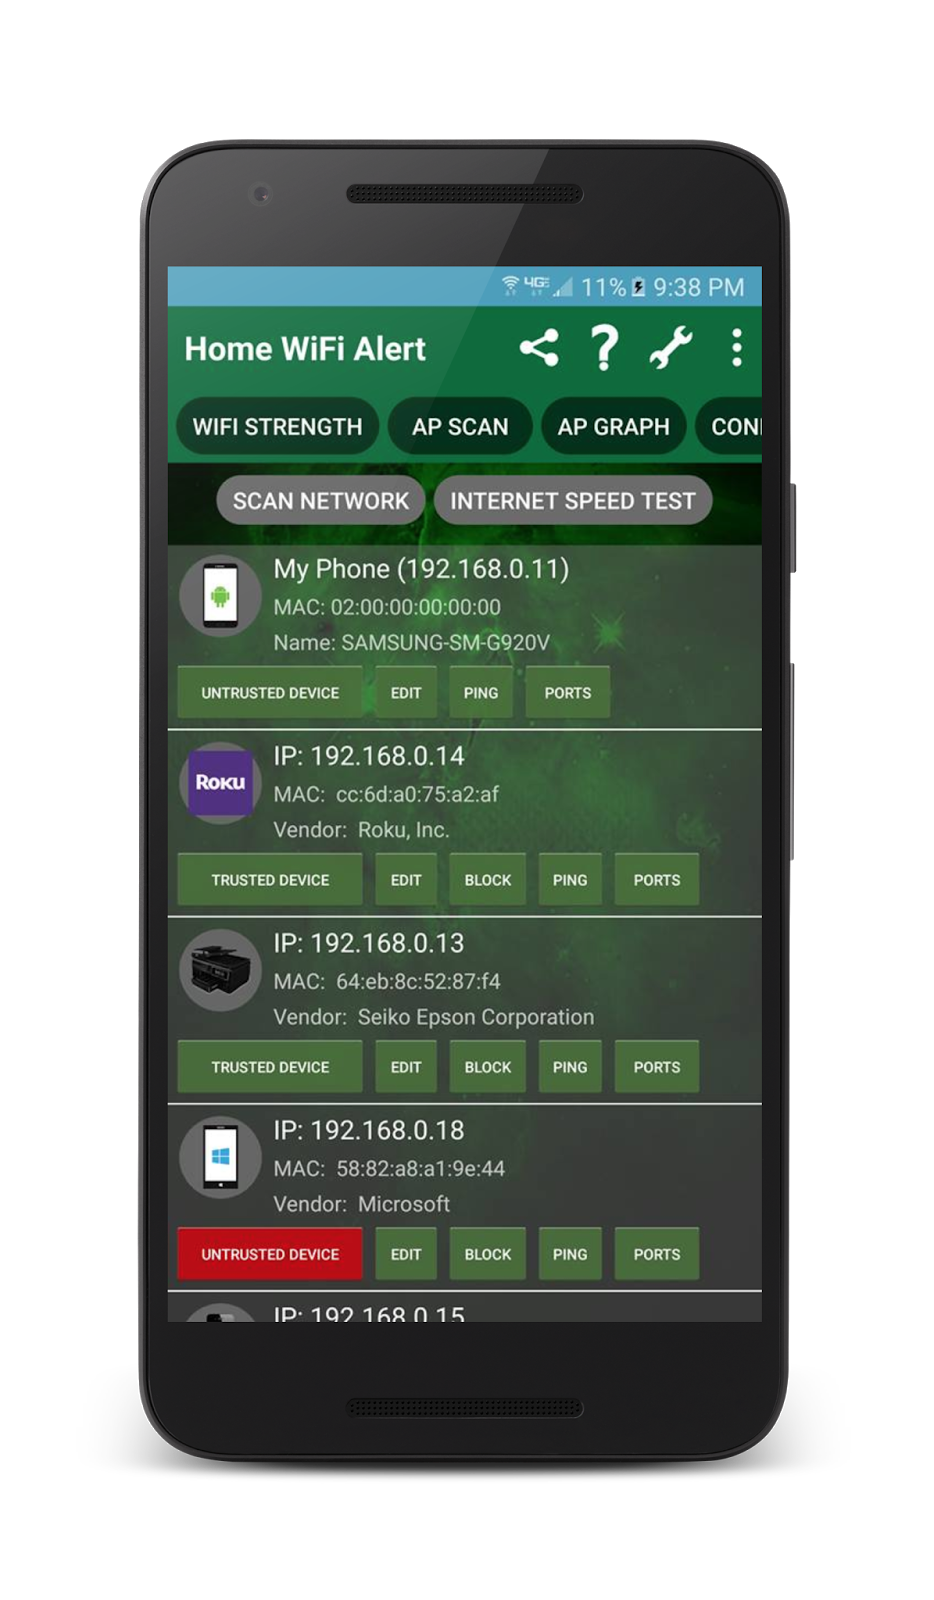 scanning wi-fi network